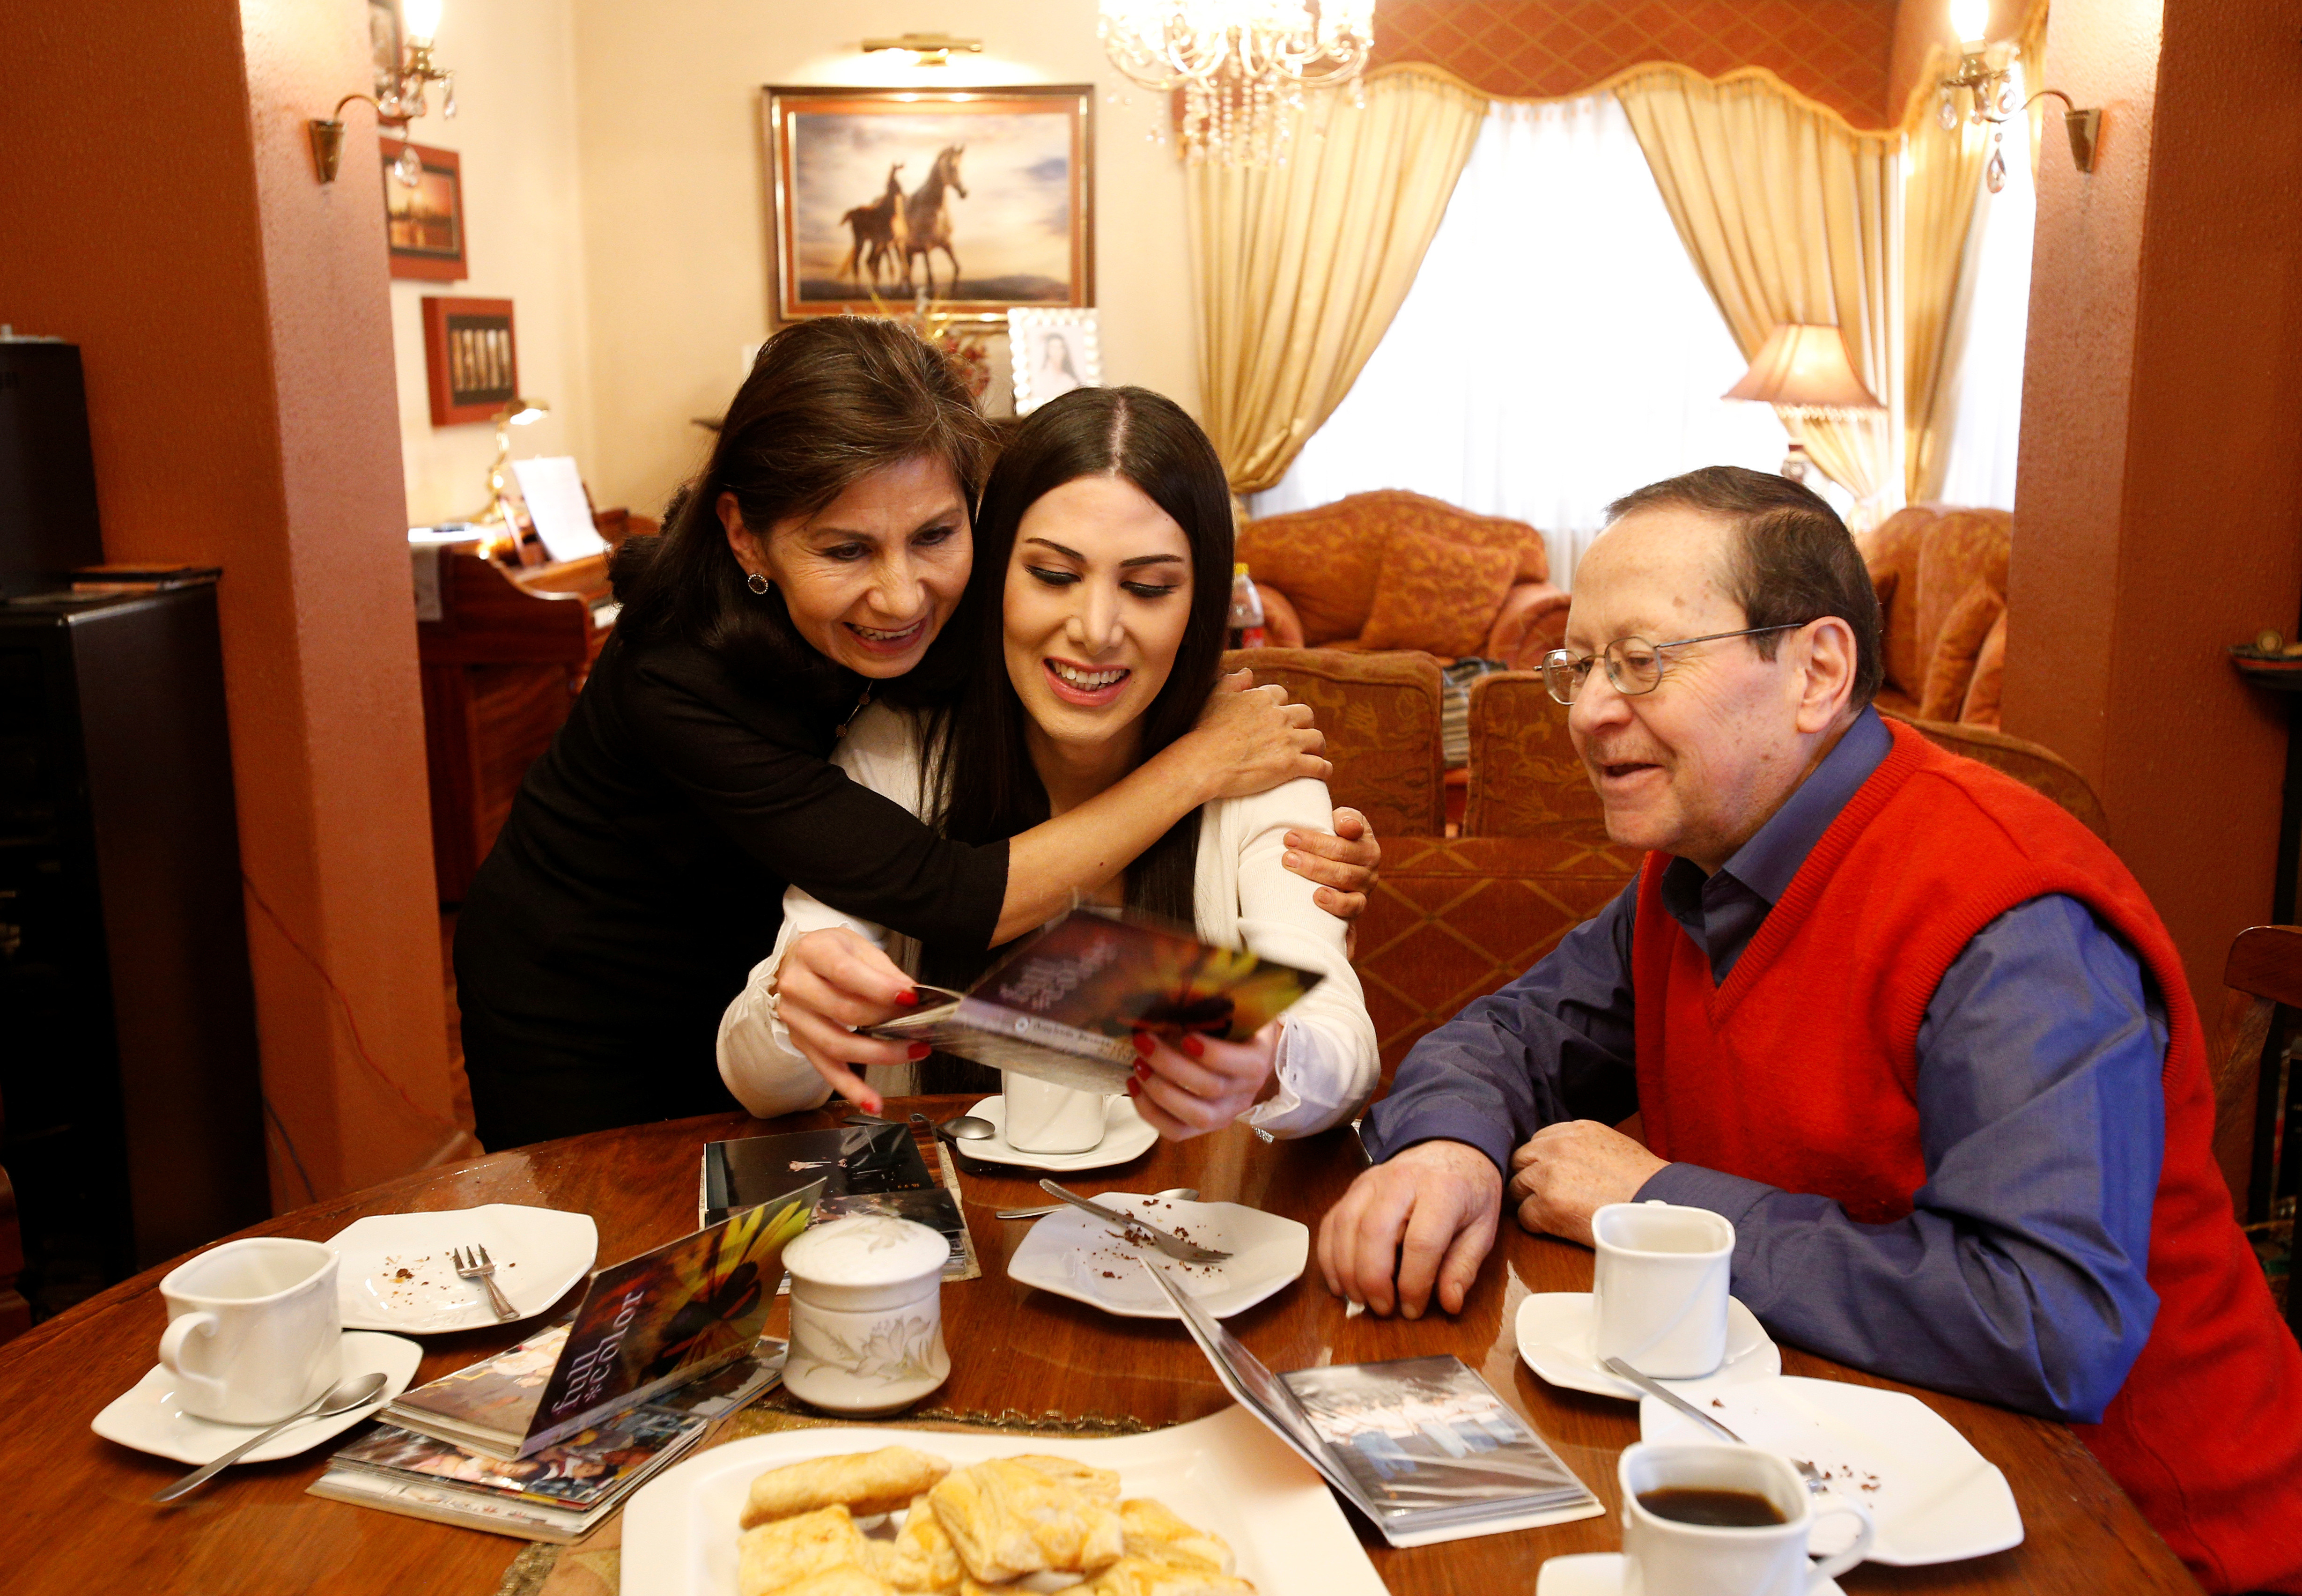 Leonie Dorado, a transgender news anchor, looks at family photos with her parents Carol Arce and Hugo Dorado at her home, amid the outbreak of coronavirus disease (COVID-19), in La Paz, Bolivia, July 1, 2020. Picture taken July 1, 2020. REUTERS/David Mercado - RC2DOH91DSBG